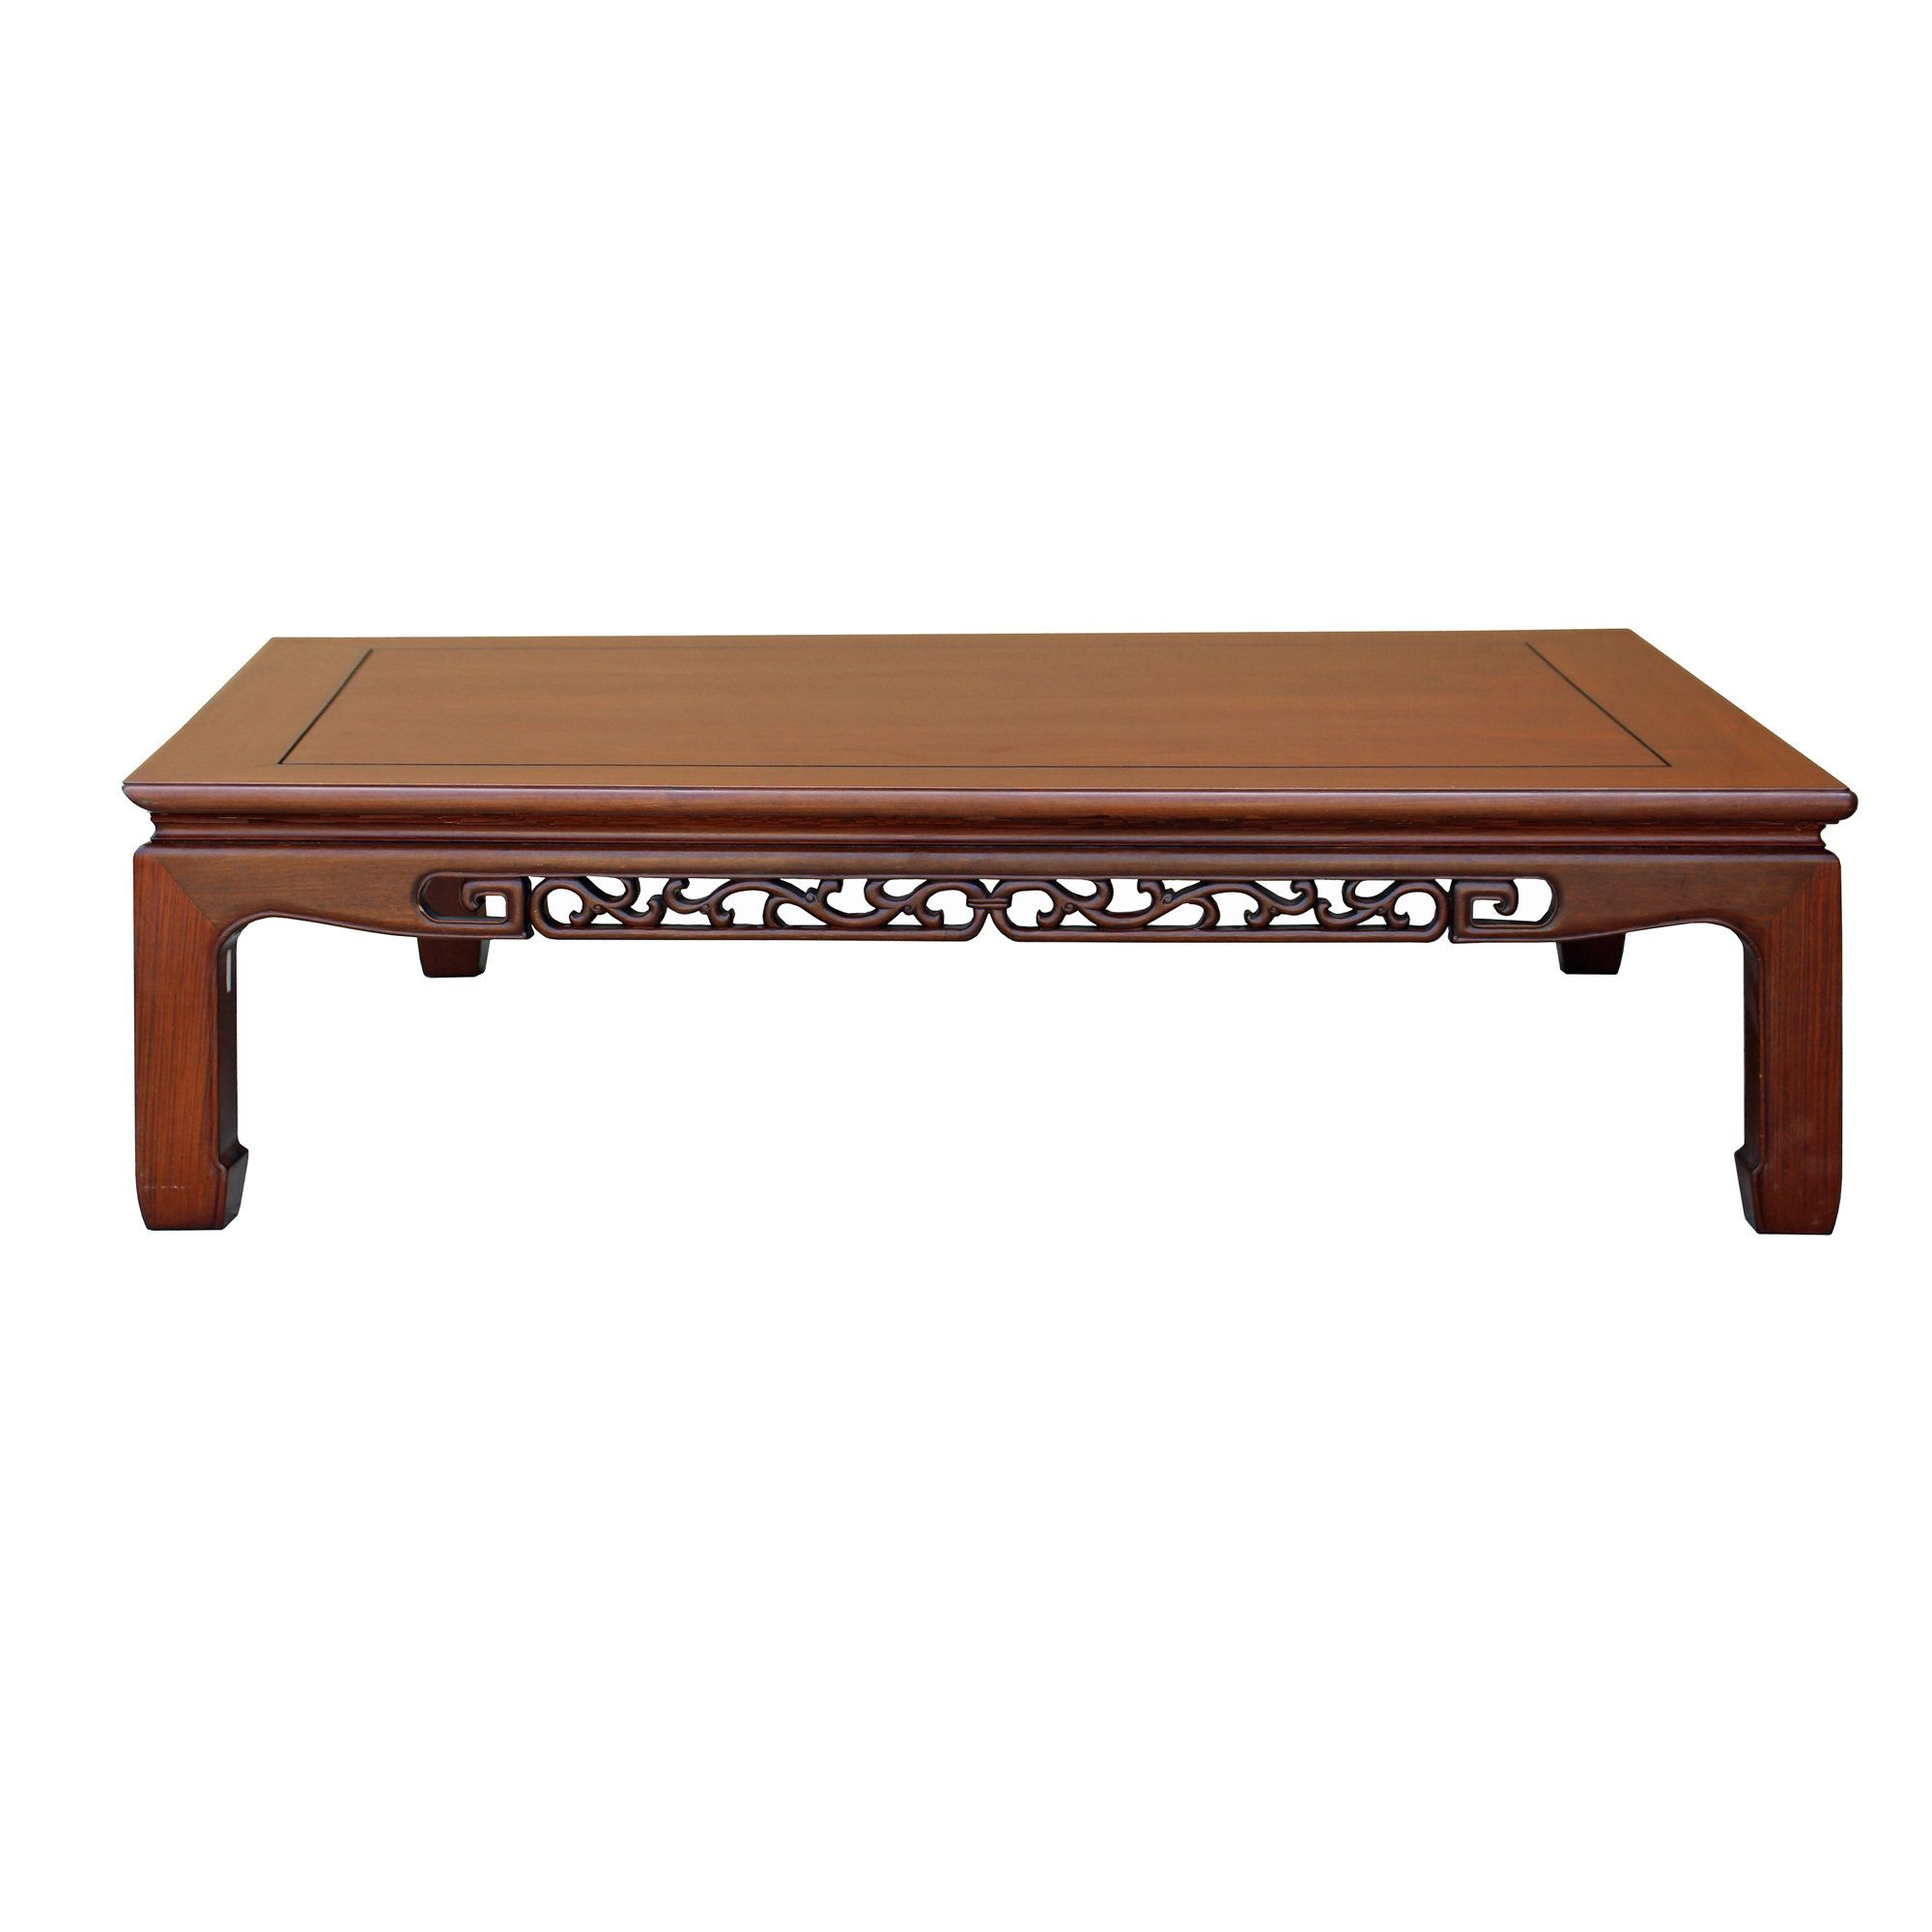 Chinese Oriental Large Rectangular Huali Rosewood Low Coffee Etsy In 2021 Low Coffee Table Coffee Table Rosewood Table [ 2000 x 2000 Pixel ]